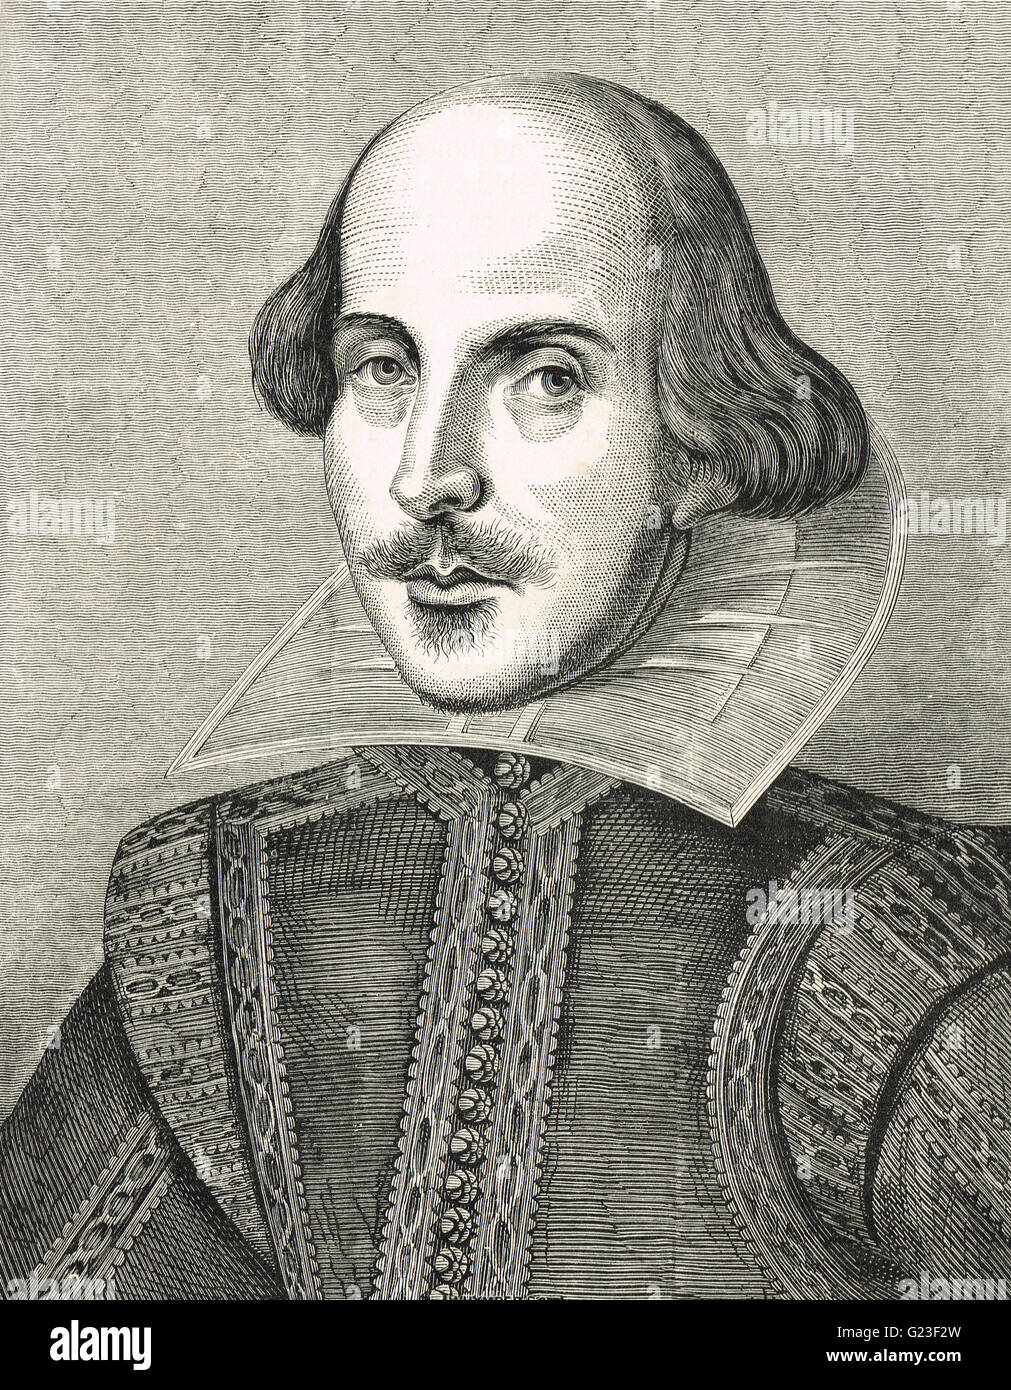 William Shakespeare, The Bard of Avon, 1564-1616.   Engraved Illustration after the portrait by Martin Droeshout Stock Photo